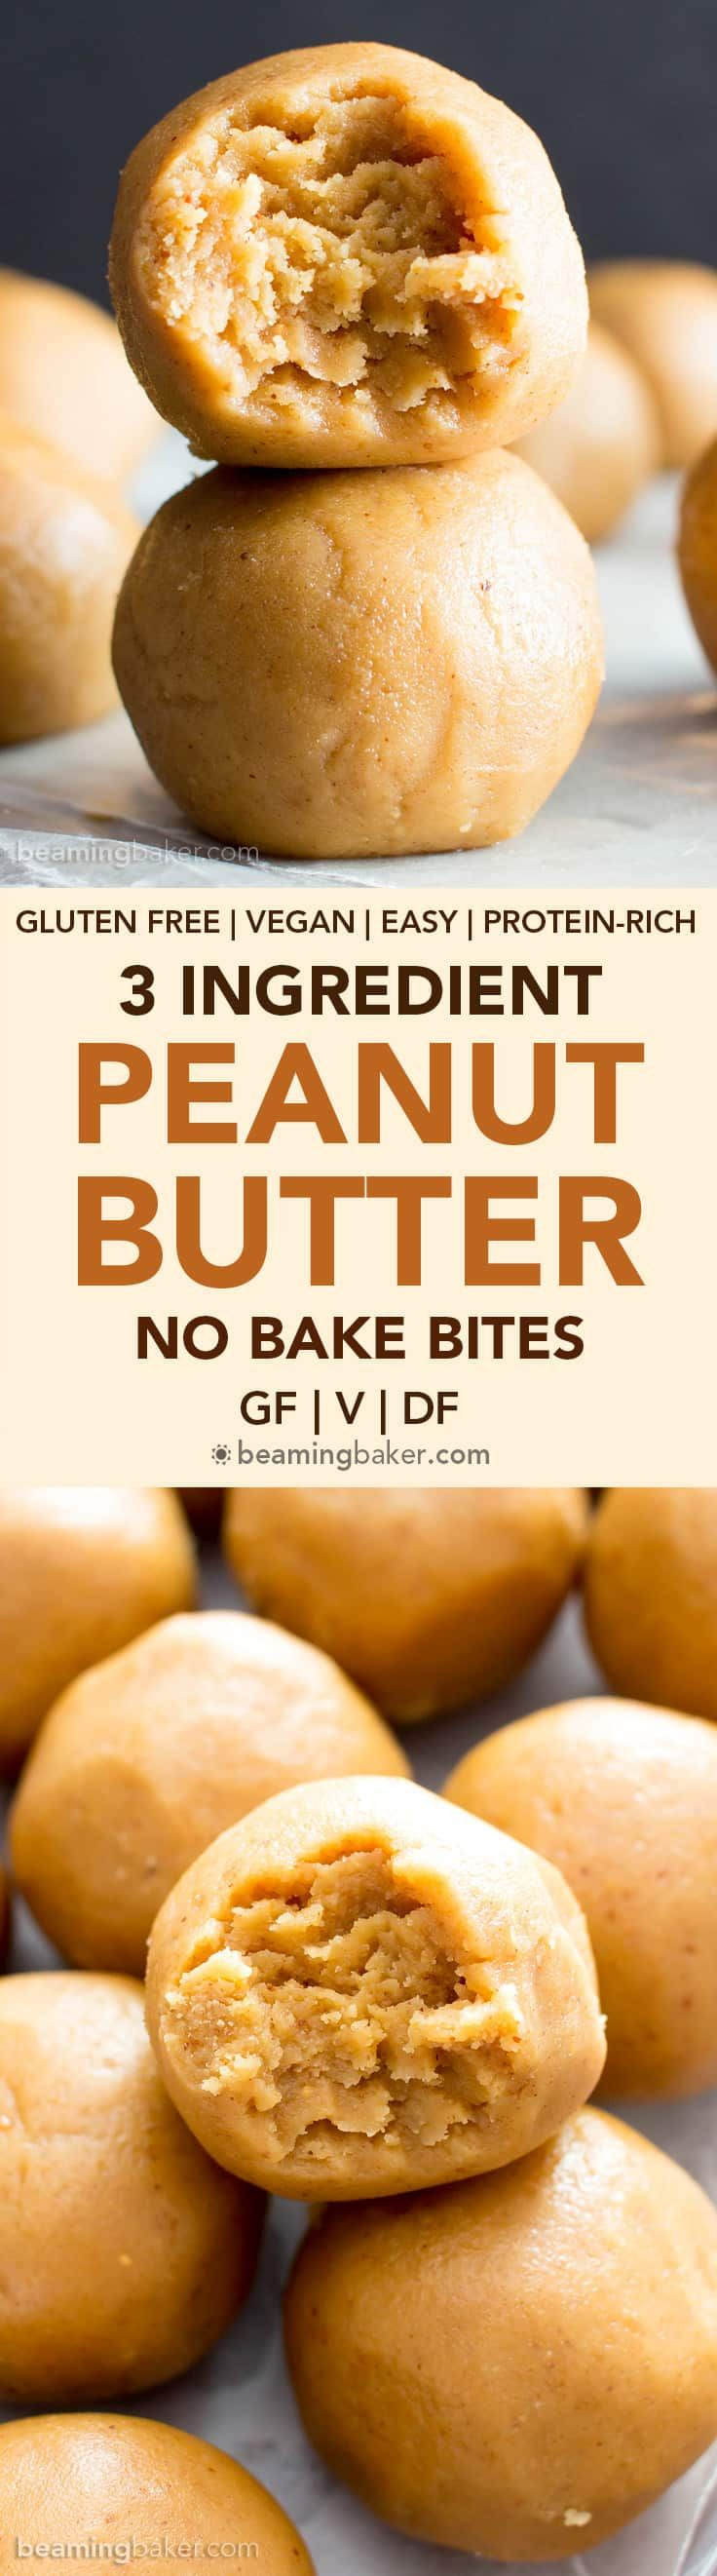 3 Ingredient Peanut Butter No Bake Energy Bites Recipe (V, GF): a one bowl recipe for easy gluten-free no bake energy bites packed with peanut butter flavor! #Vegan #GlutenFree #DairyFree #PeanutButter #NoBake #Snacks | Recipe on BeamingBaker.com